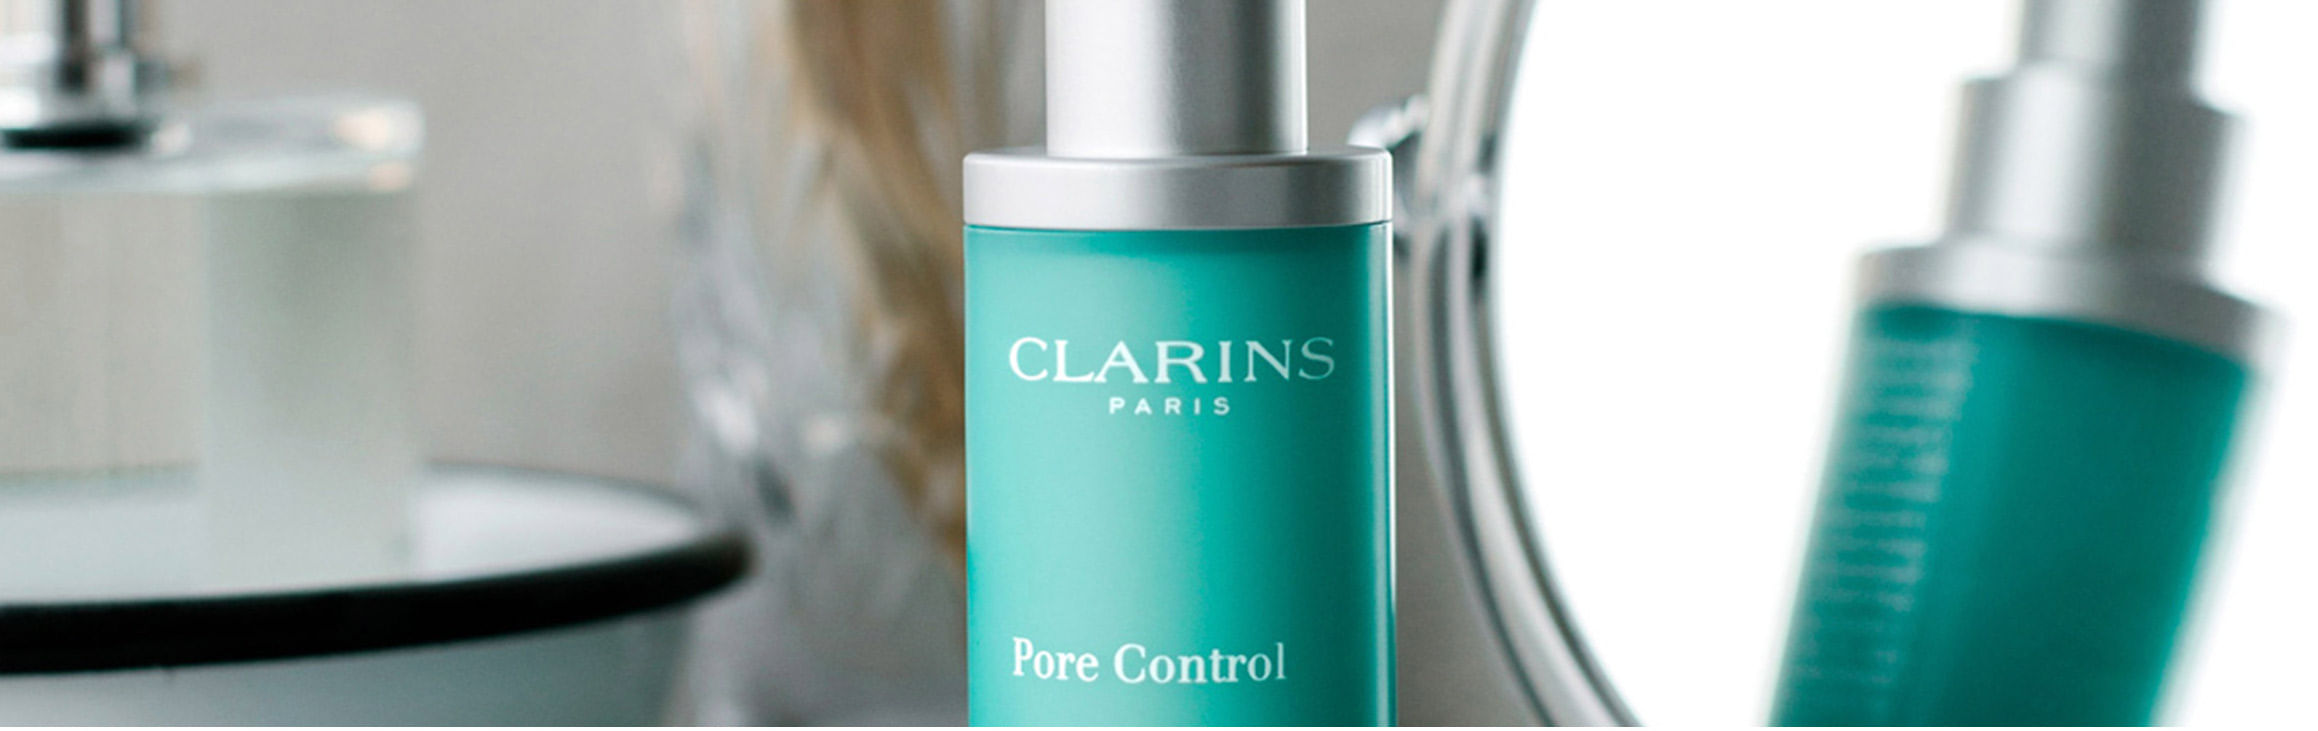 [Banner Clarins Pore Control]